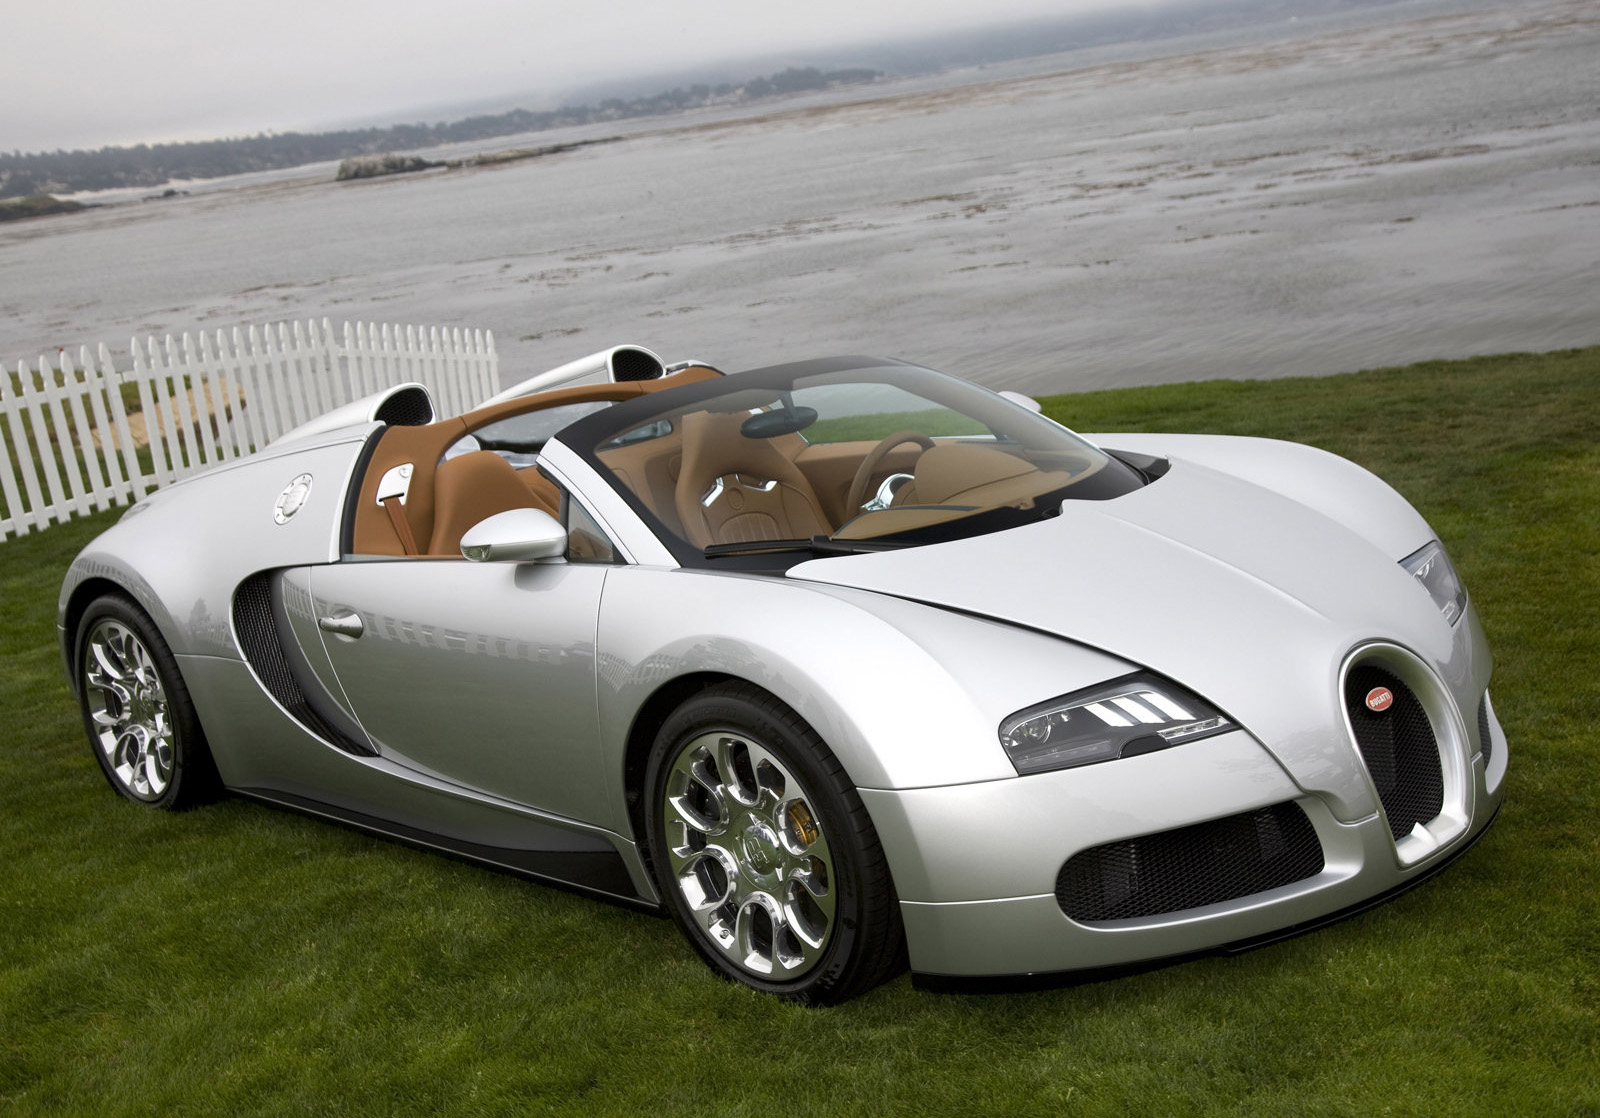 bugatti sport grand veyron - photo #11